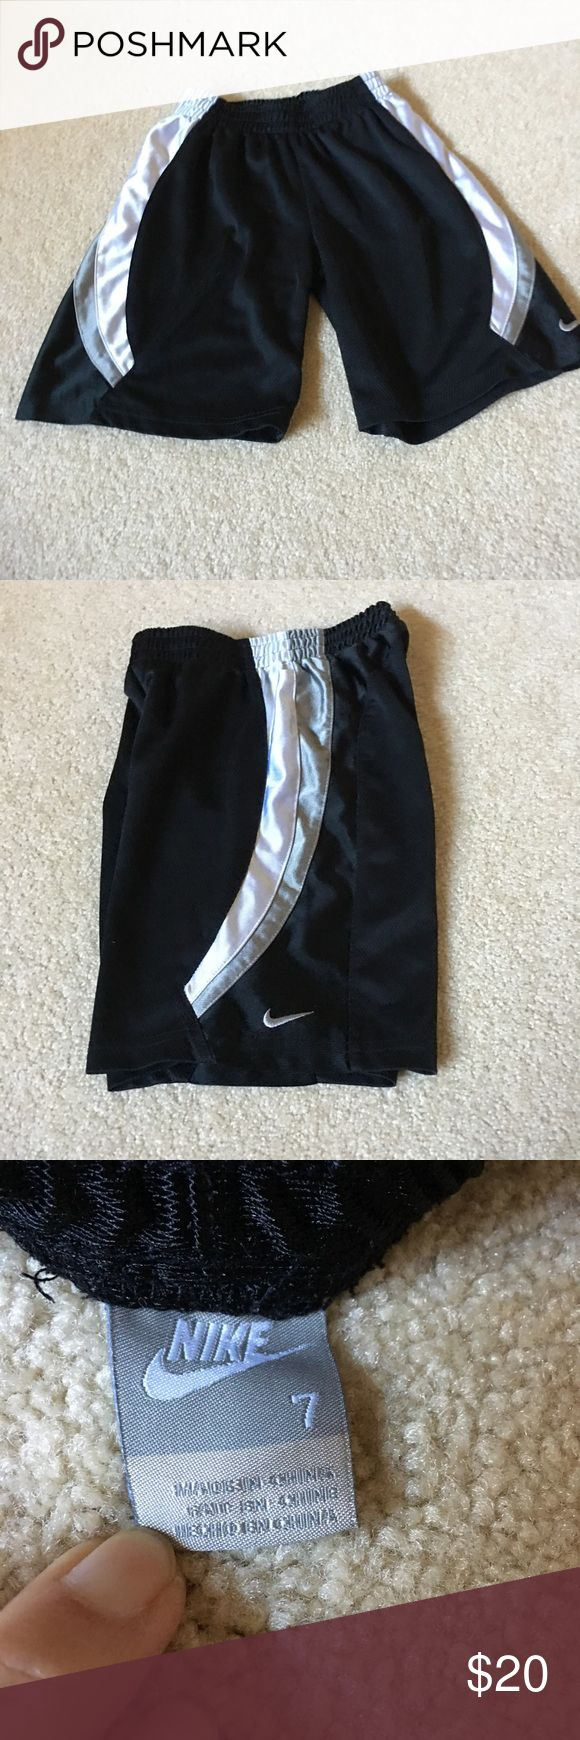 NIKE basketball shorts - 7 EUC. NIKE black with white and gray basketball shorts. Size 7. Elastic waist. No pockets. Nike Bottoms Shorts